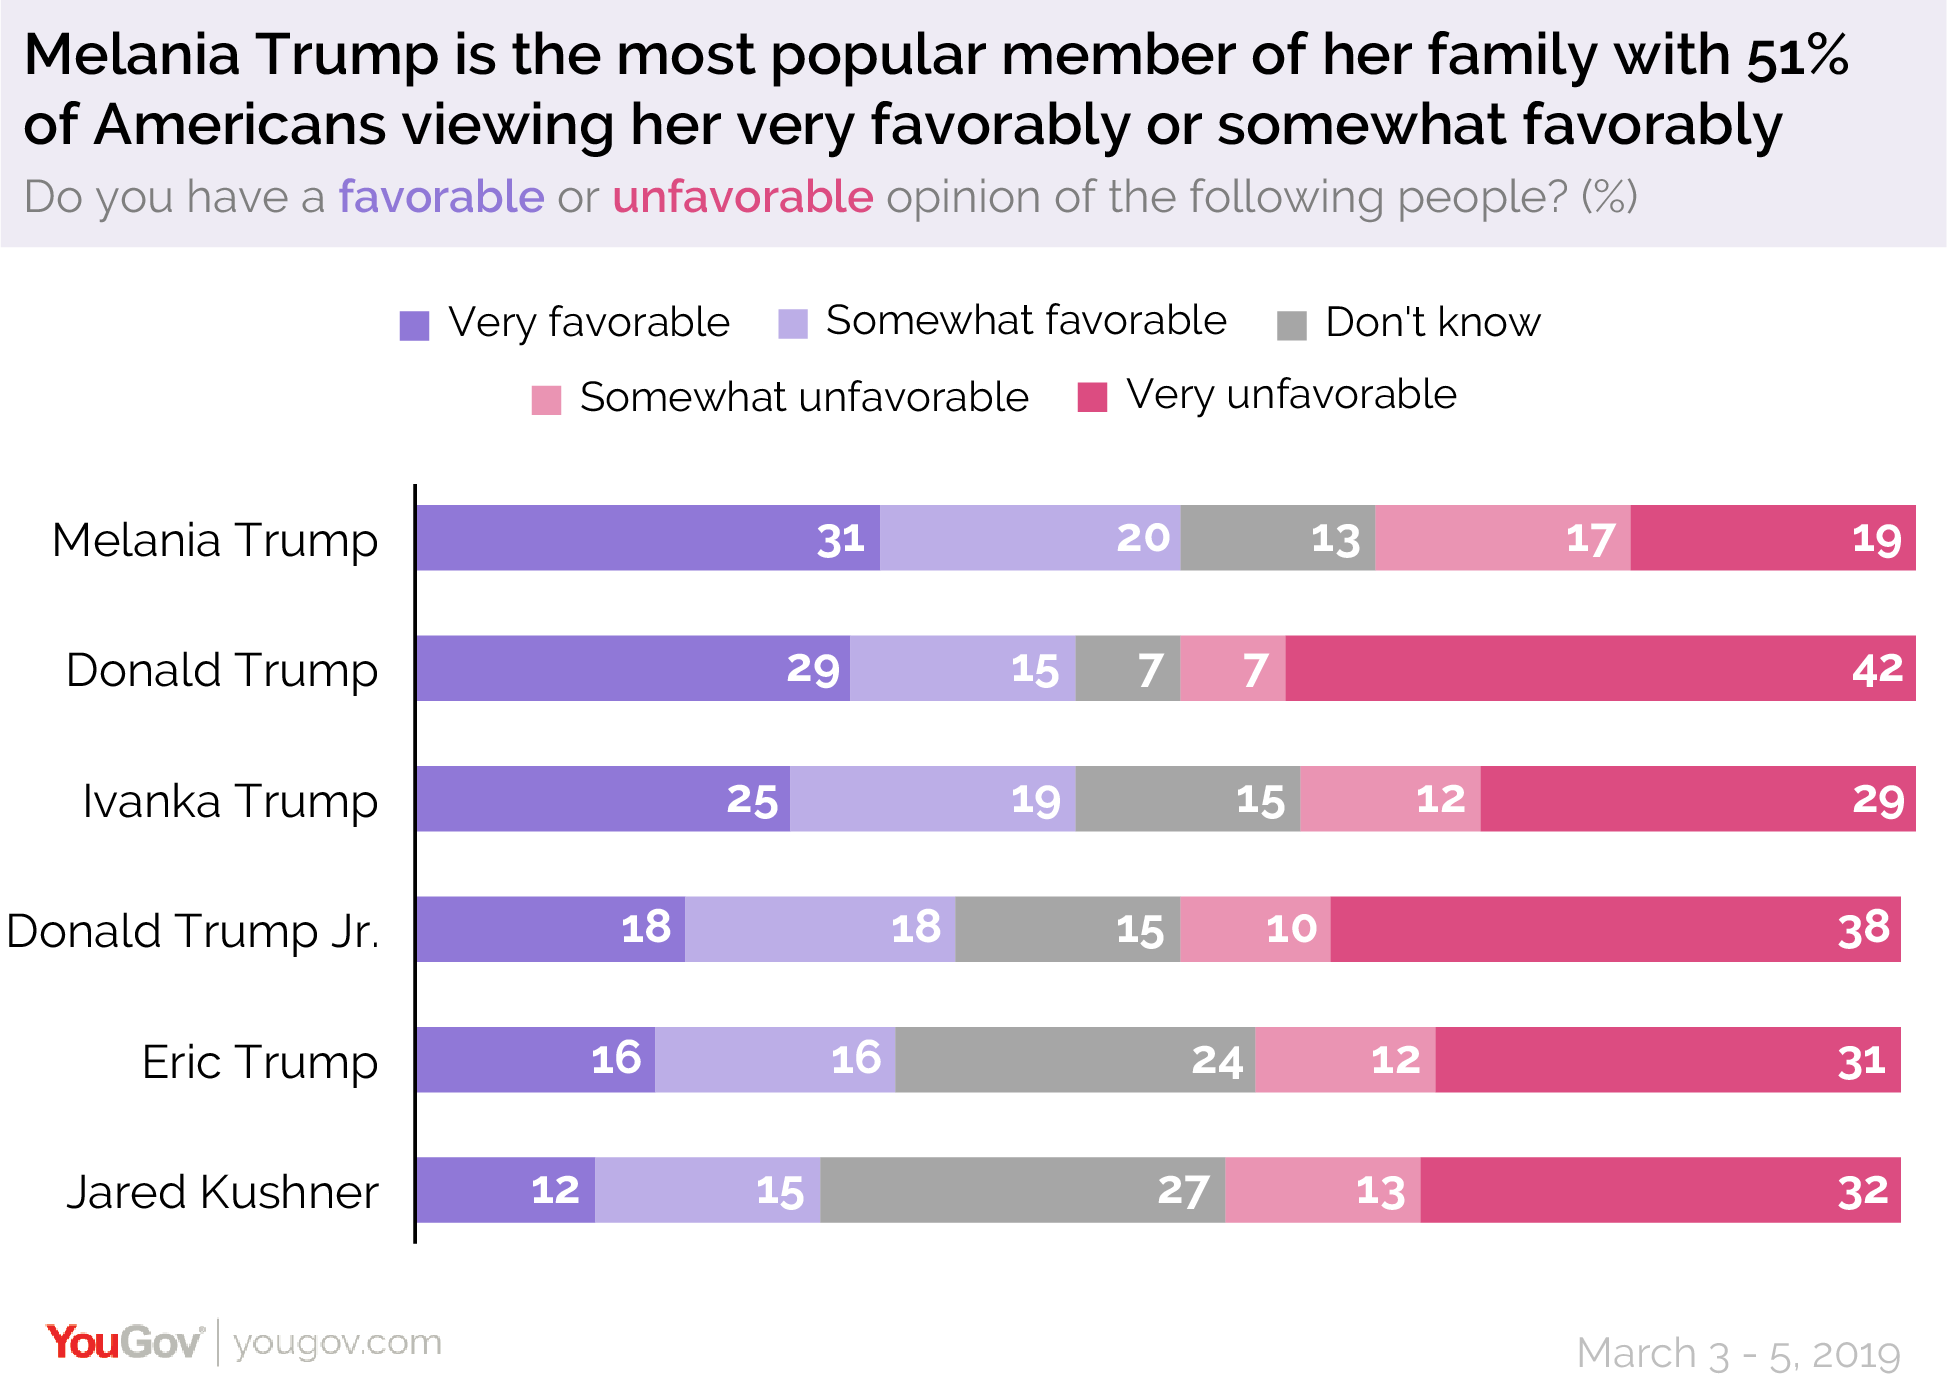 Melania Trump is the most popular member of her family with 51% of Americans viewing her favorably or somewhat favorably